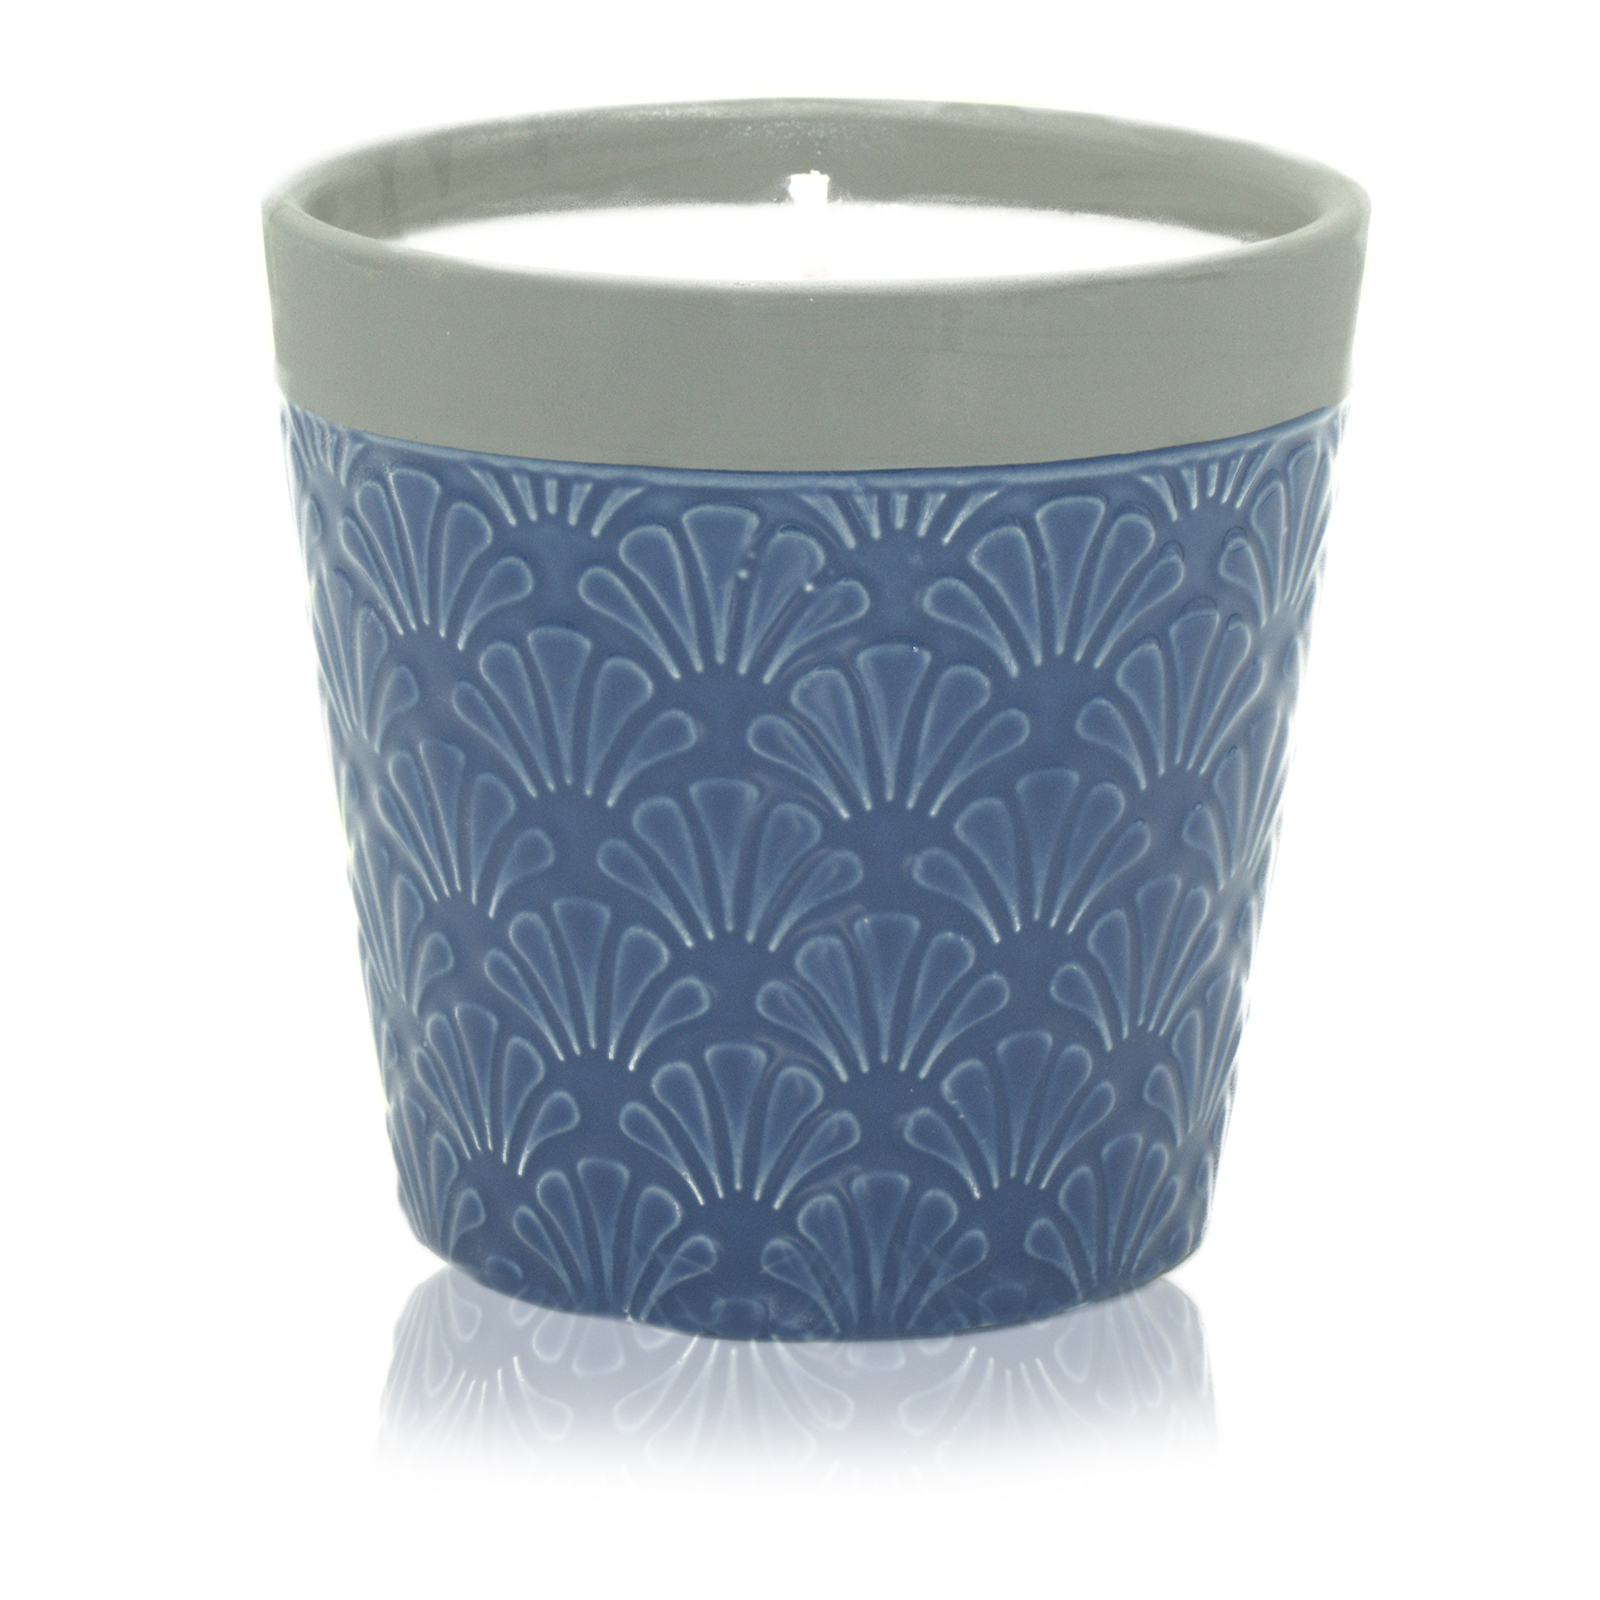 Home is Home Candle Pots Blue Day